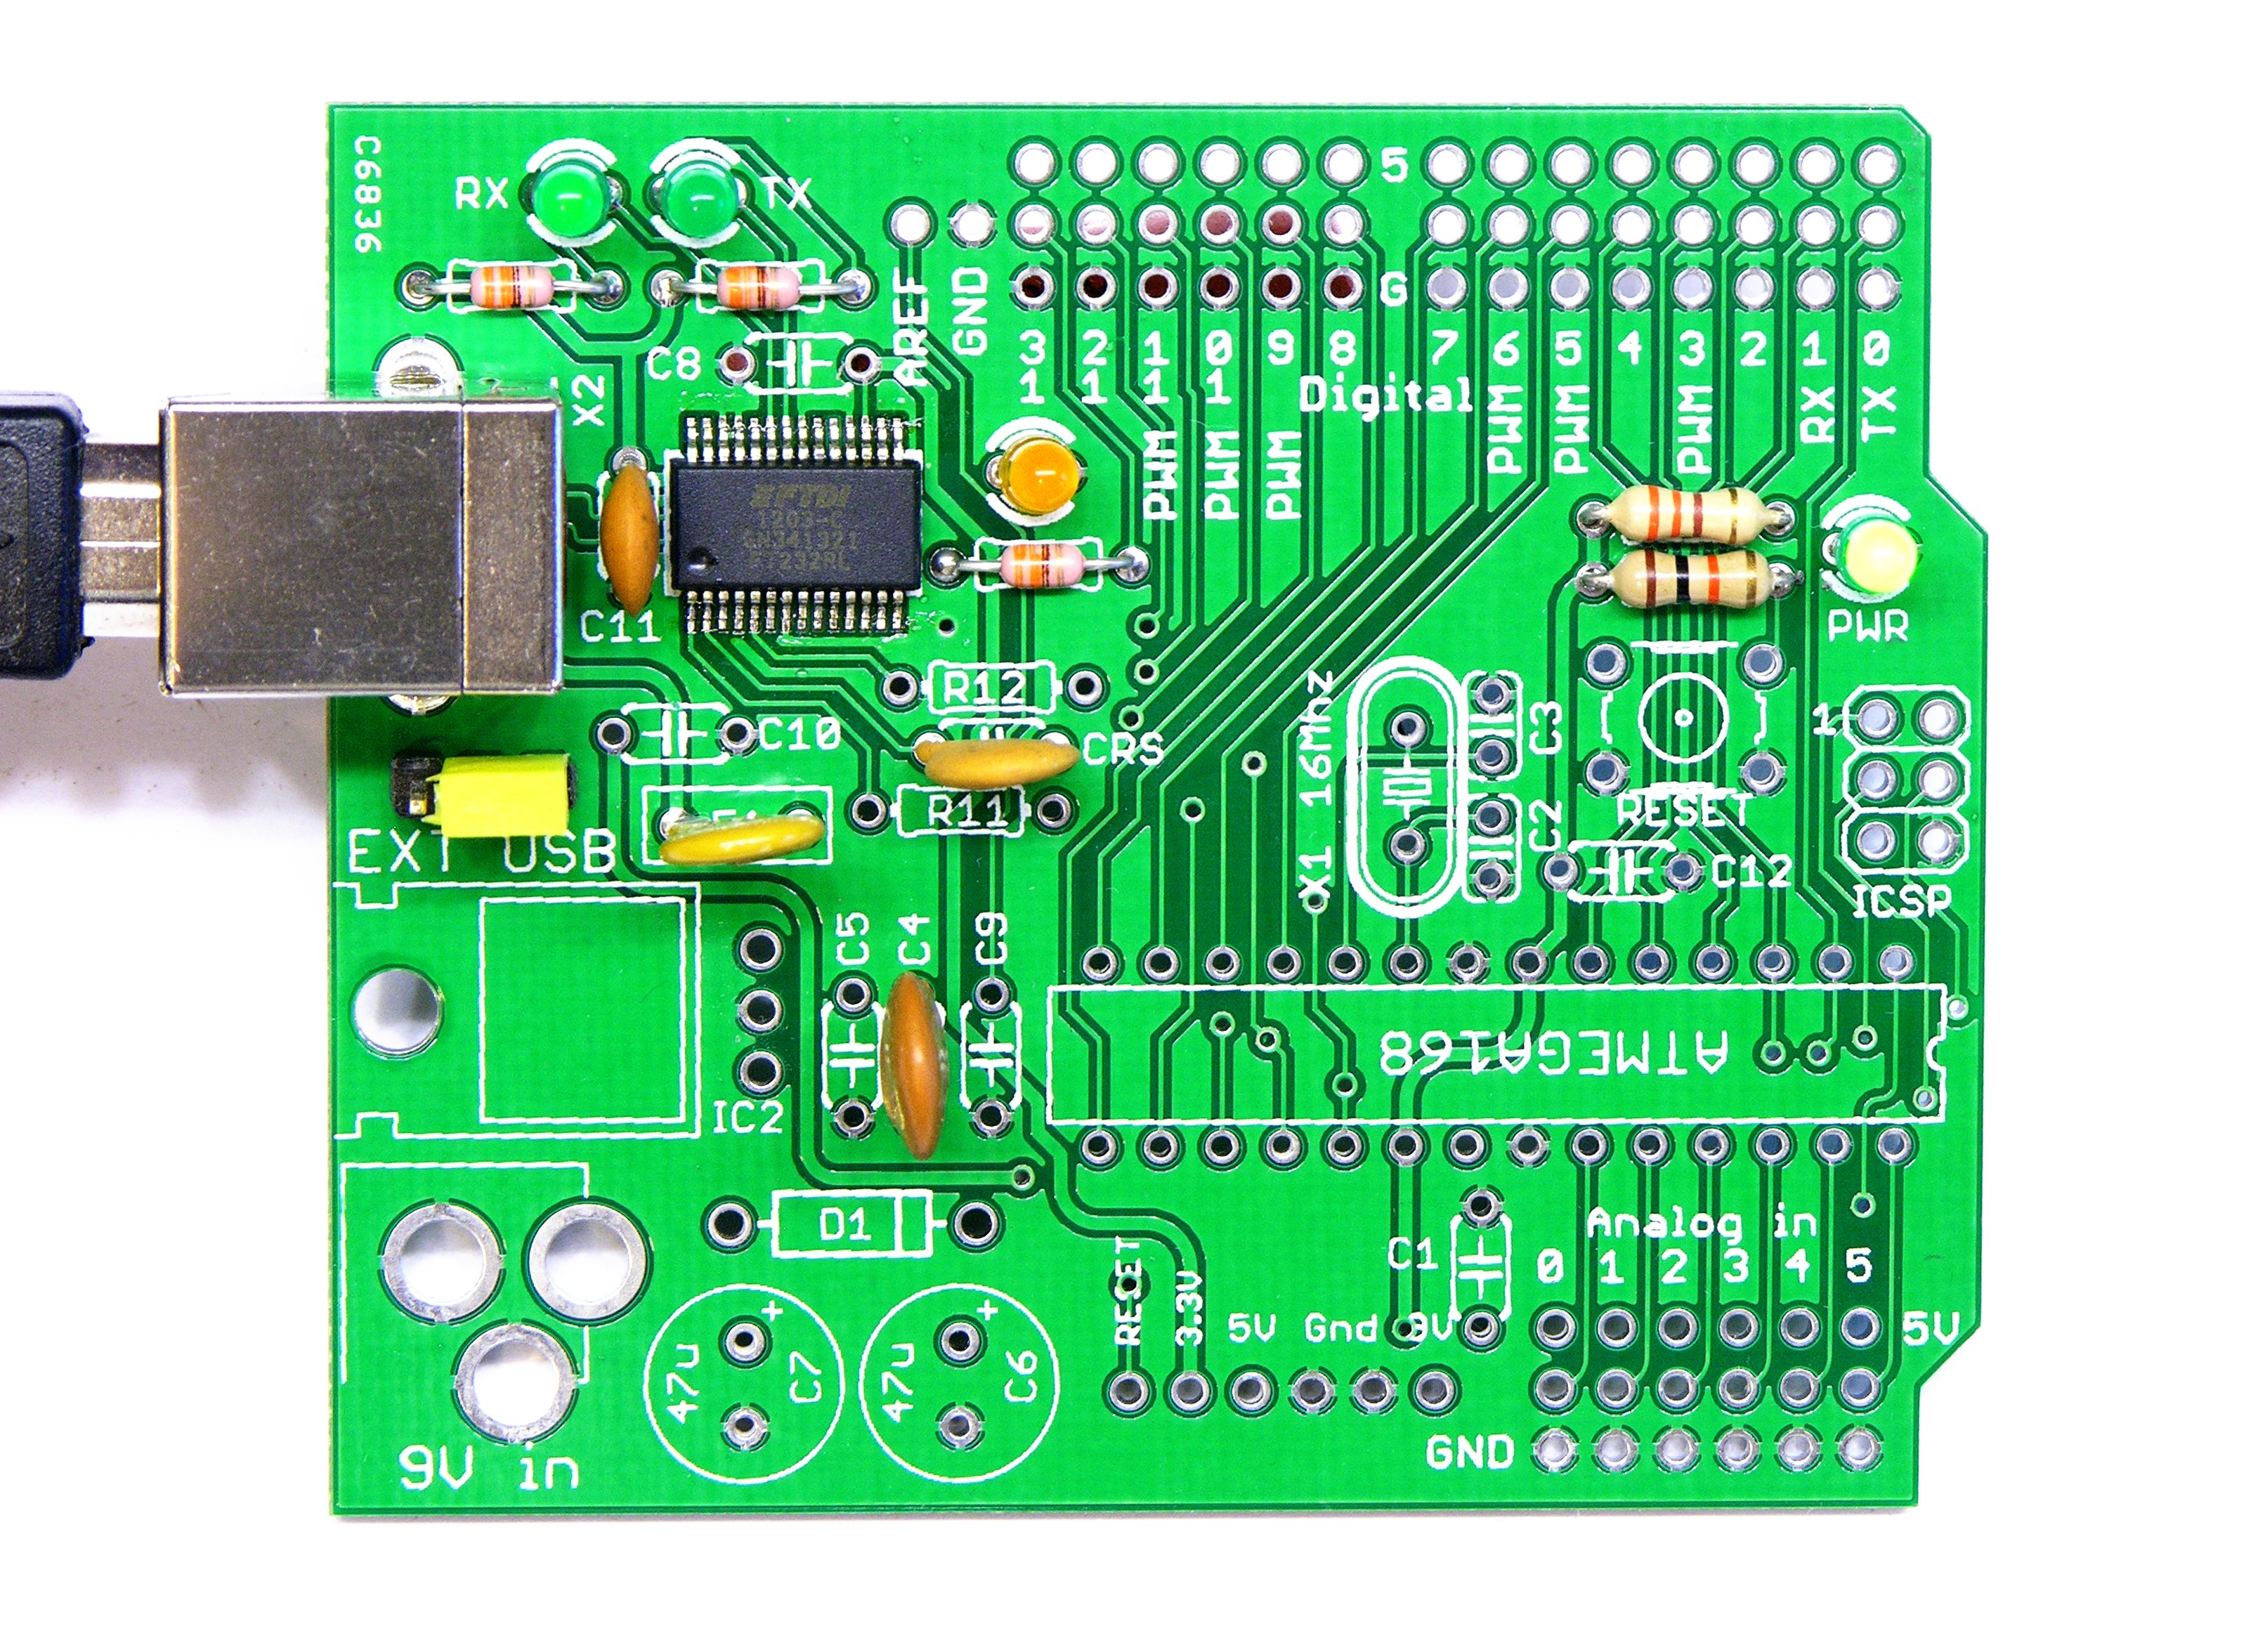 Arduino Keiths Electronics Blog With Thermistor And Voltage Divider Circuit Programming The Compatible Usb Serial Components Installed